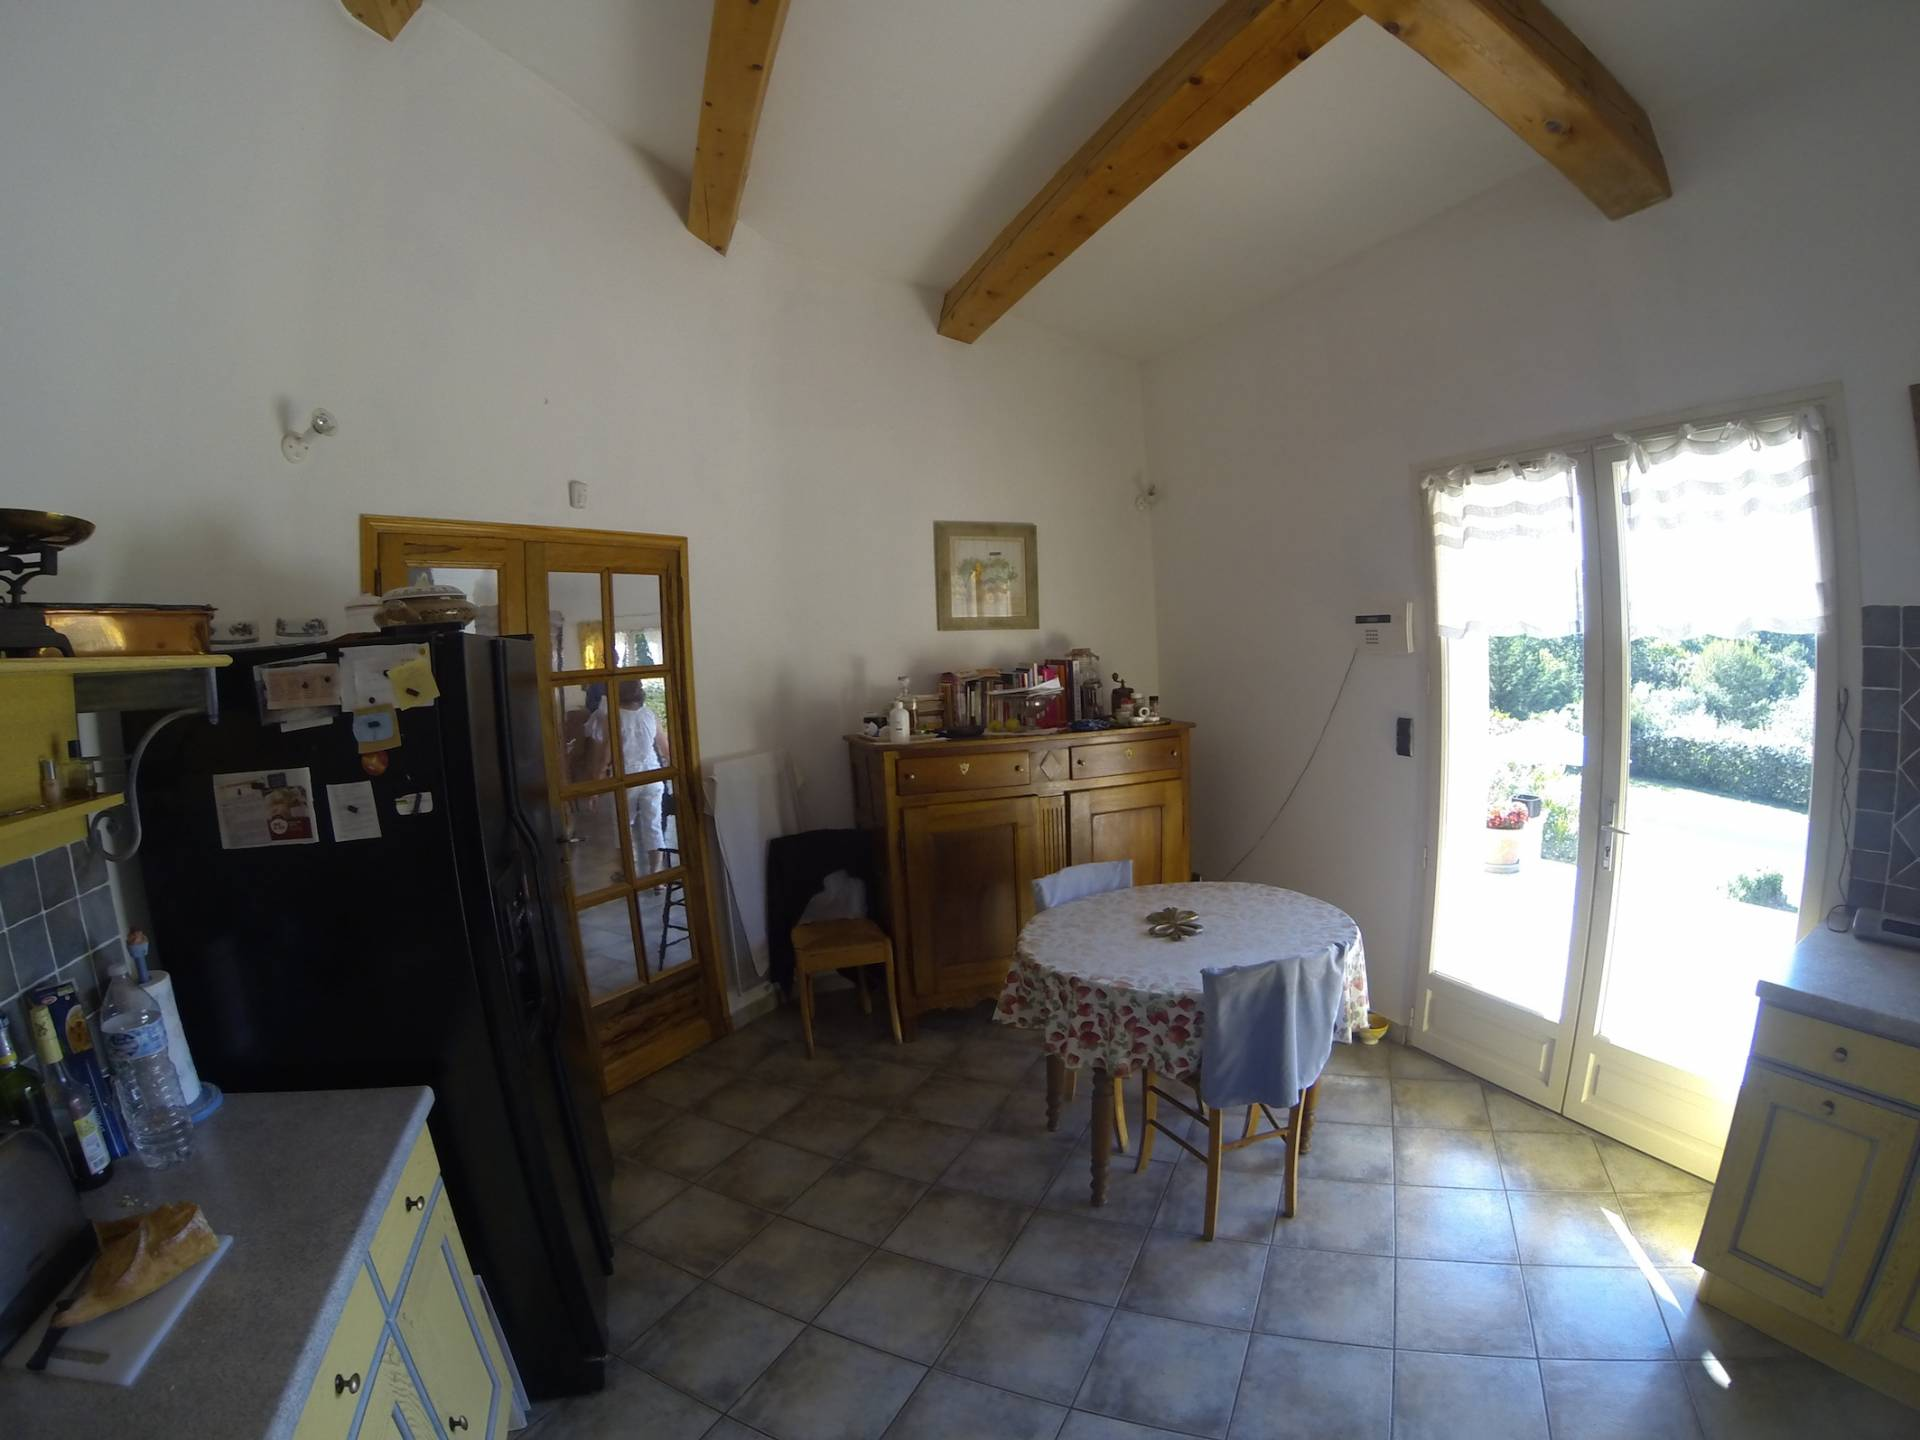 At Brignoles, lovely Provencal house at 35 minutes from the seaside.